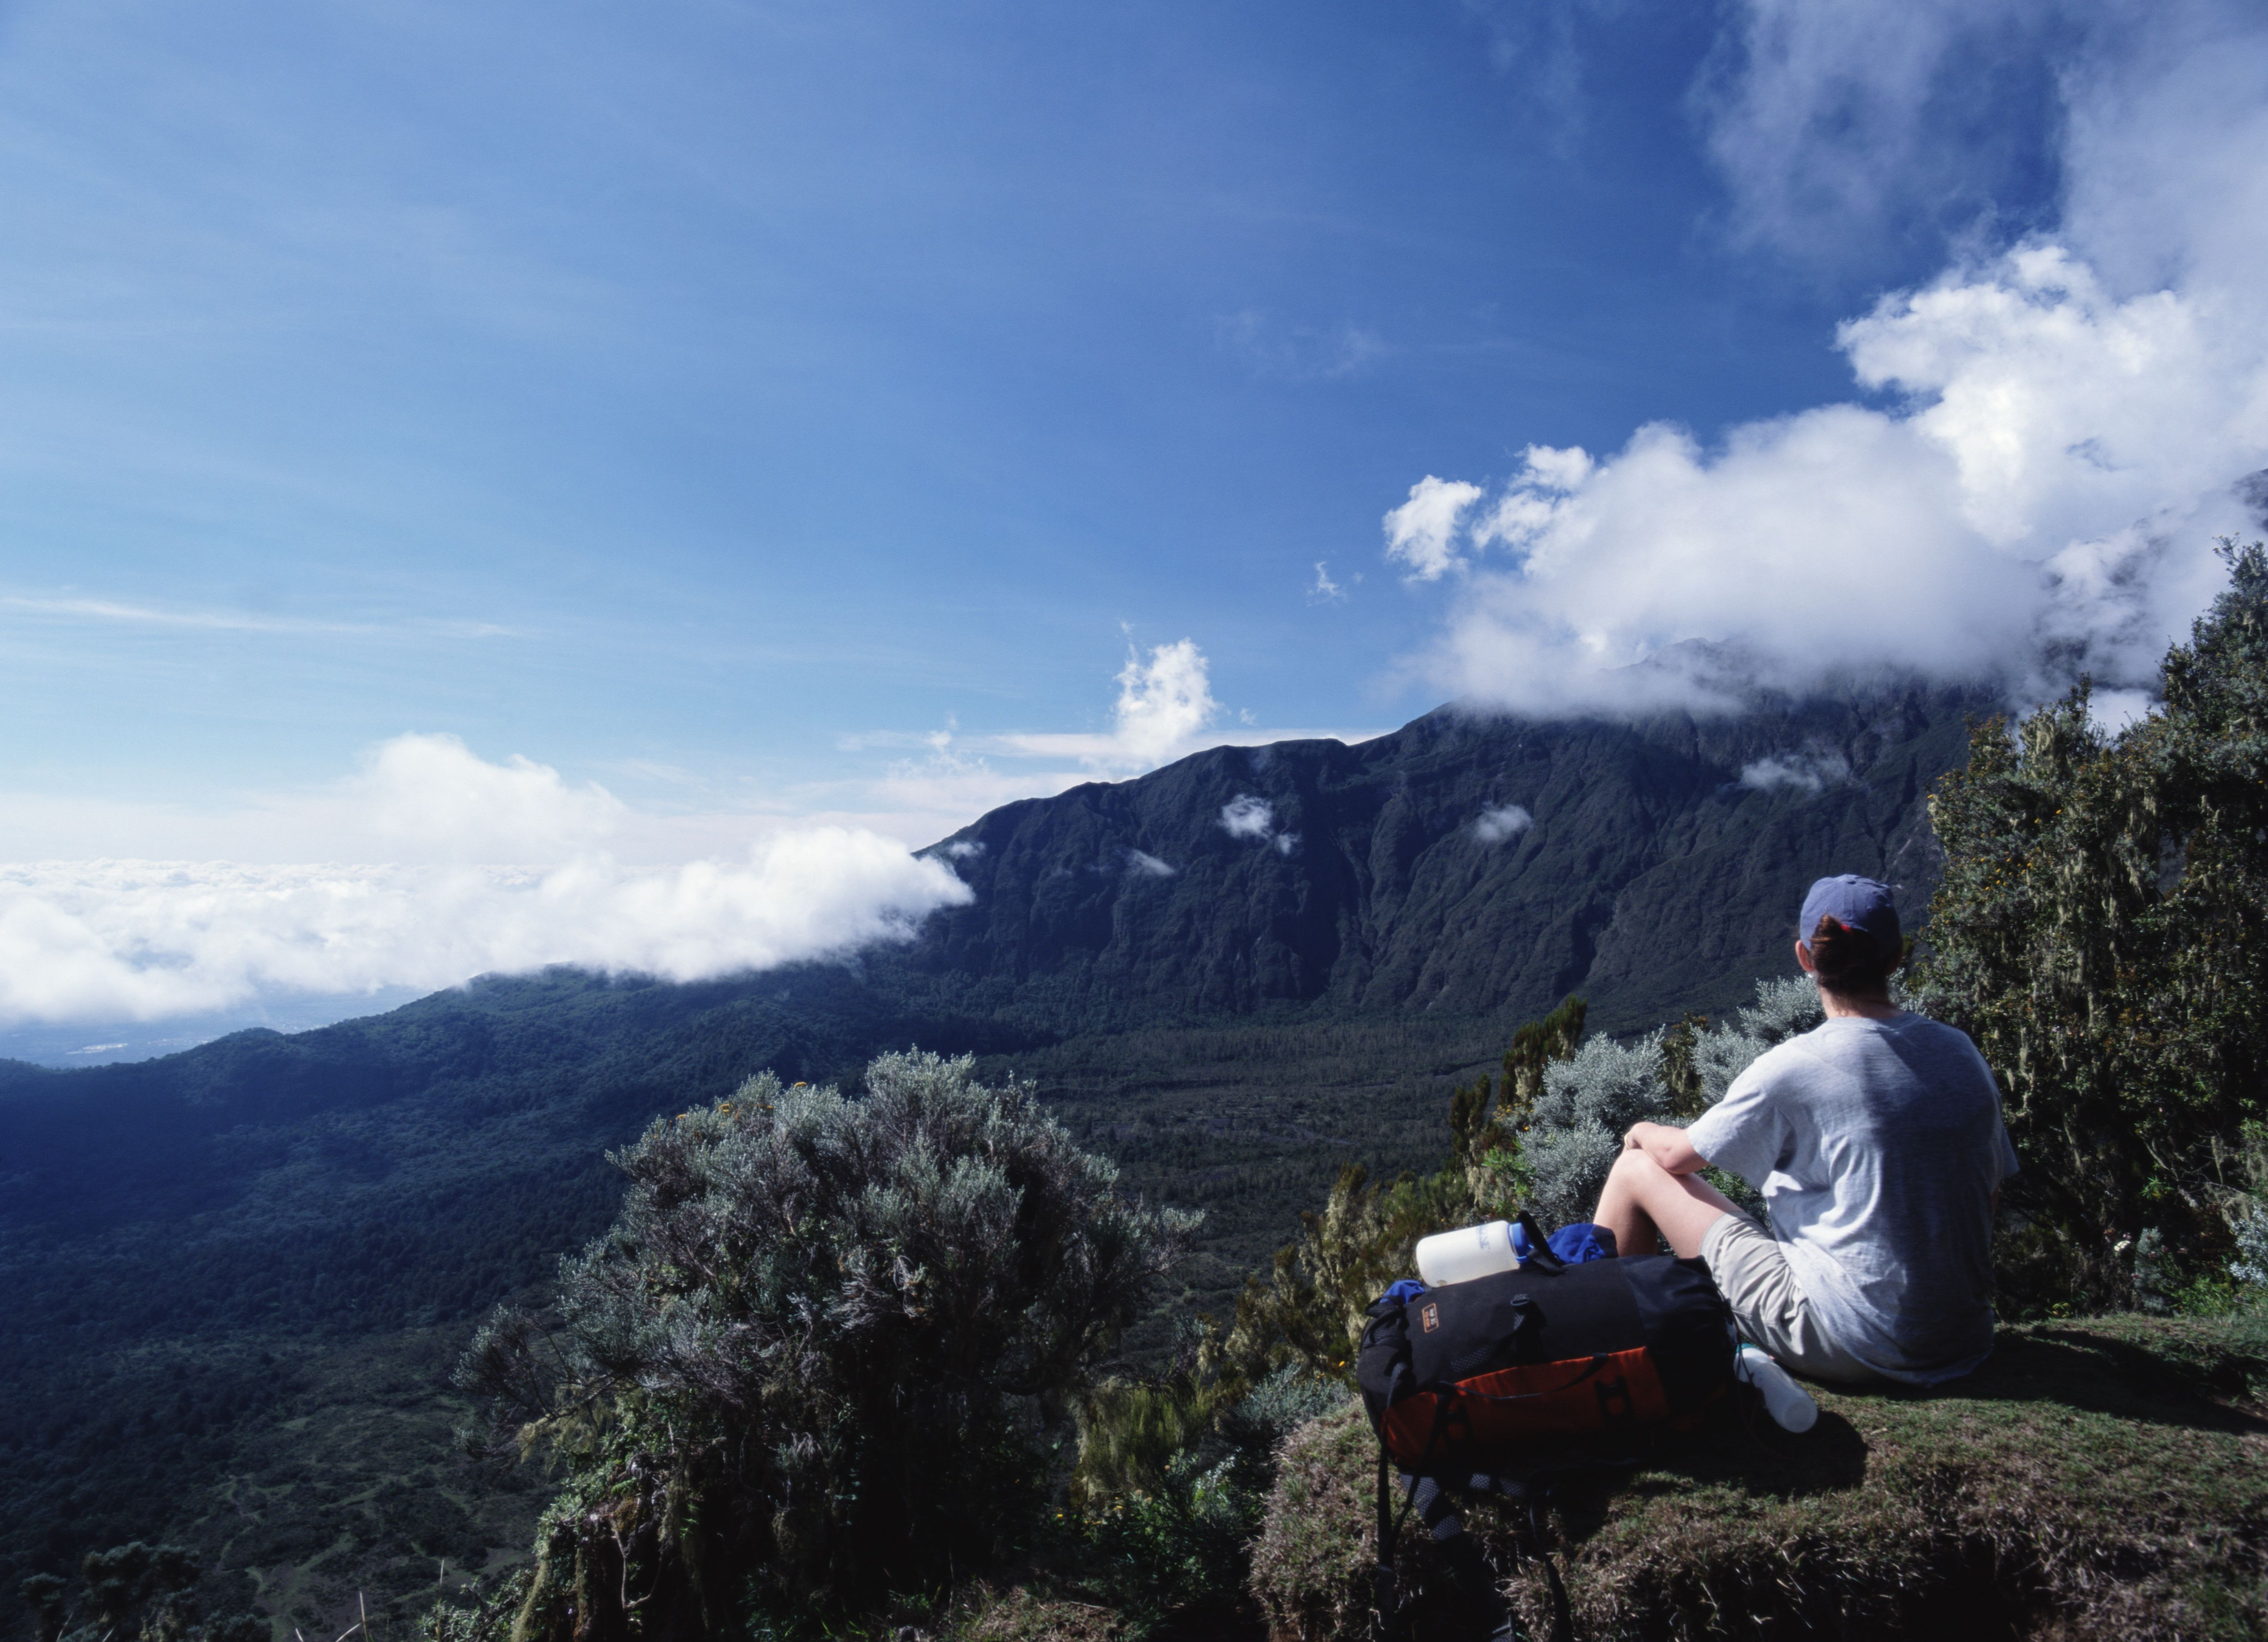 Woman with backpack sitting on edge of mountaintop